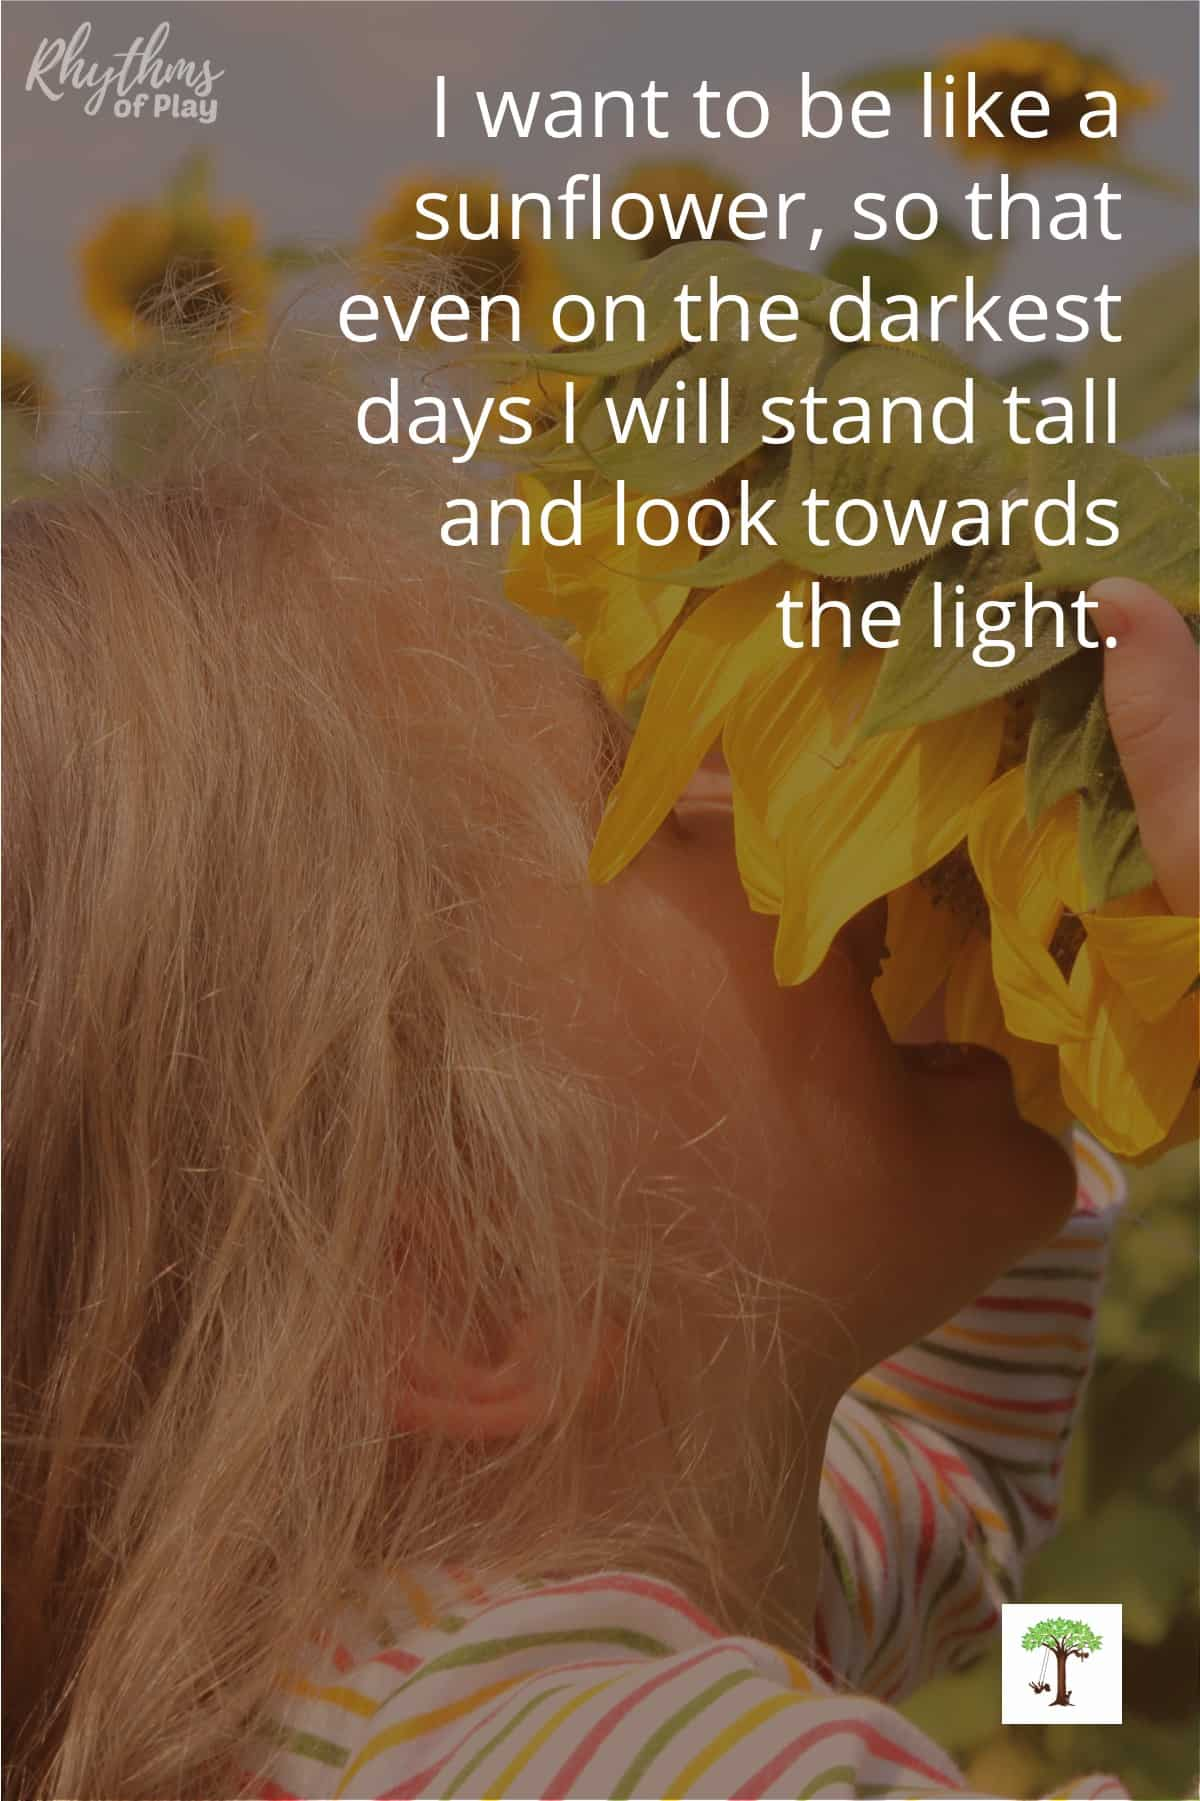 """Girl with sunflower quote overlay, """"I want to be like a sunflower so that even on the darkest days I will stand tall and look towards the light."""""""